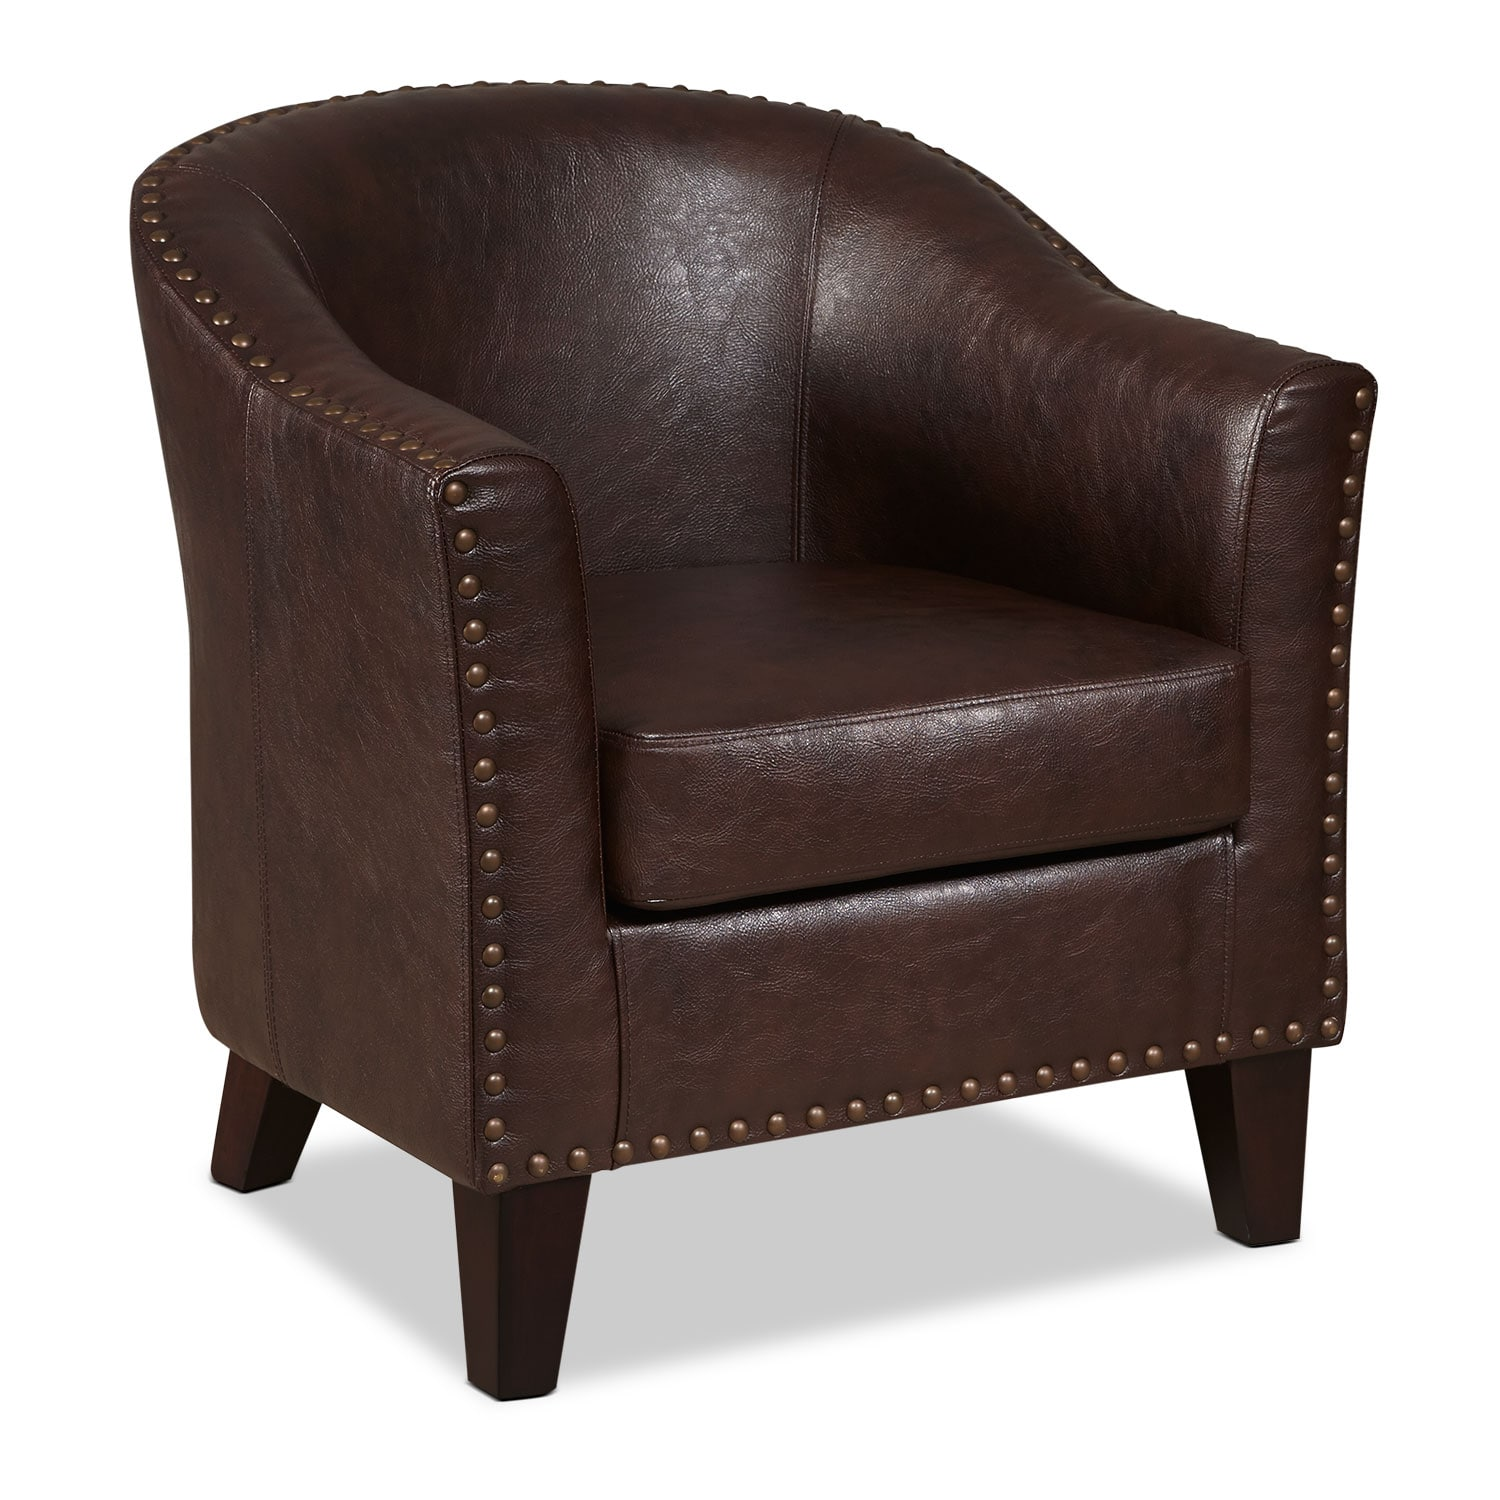 Living Room Furniture - Brogan Accent Chair - Brown